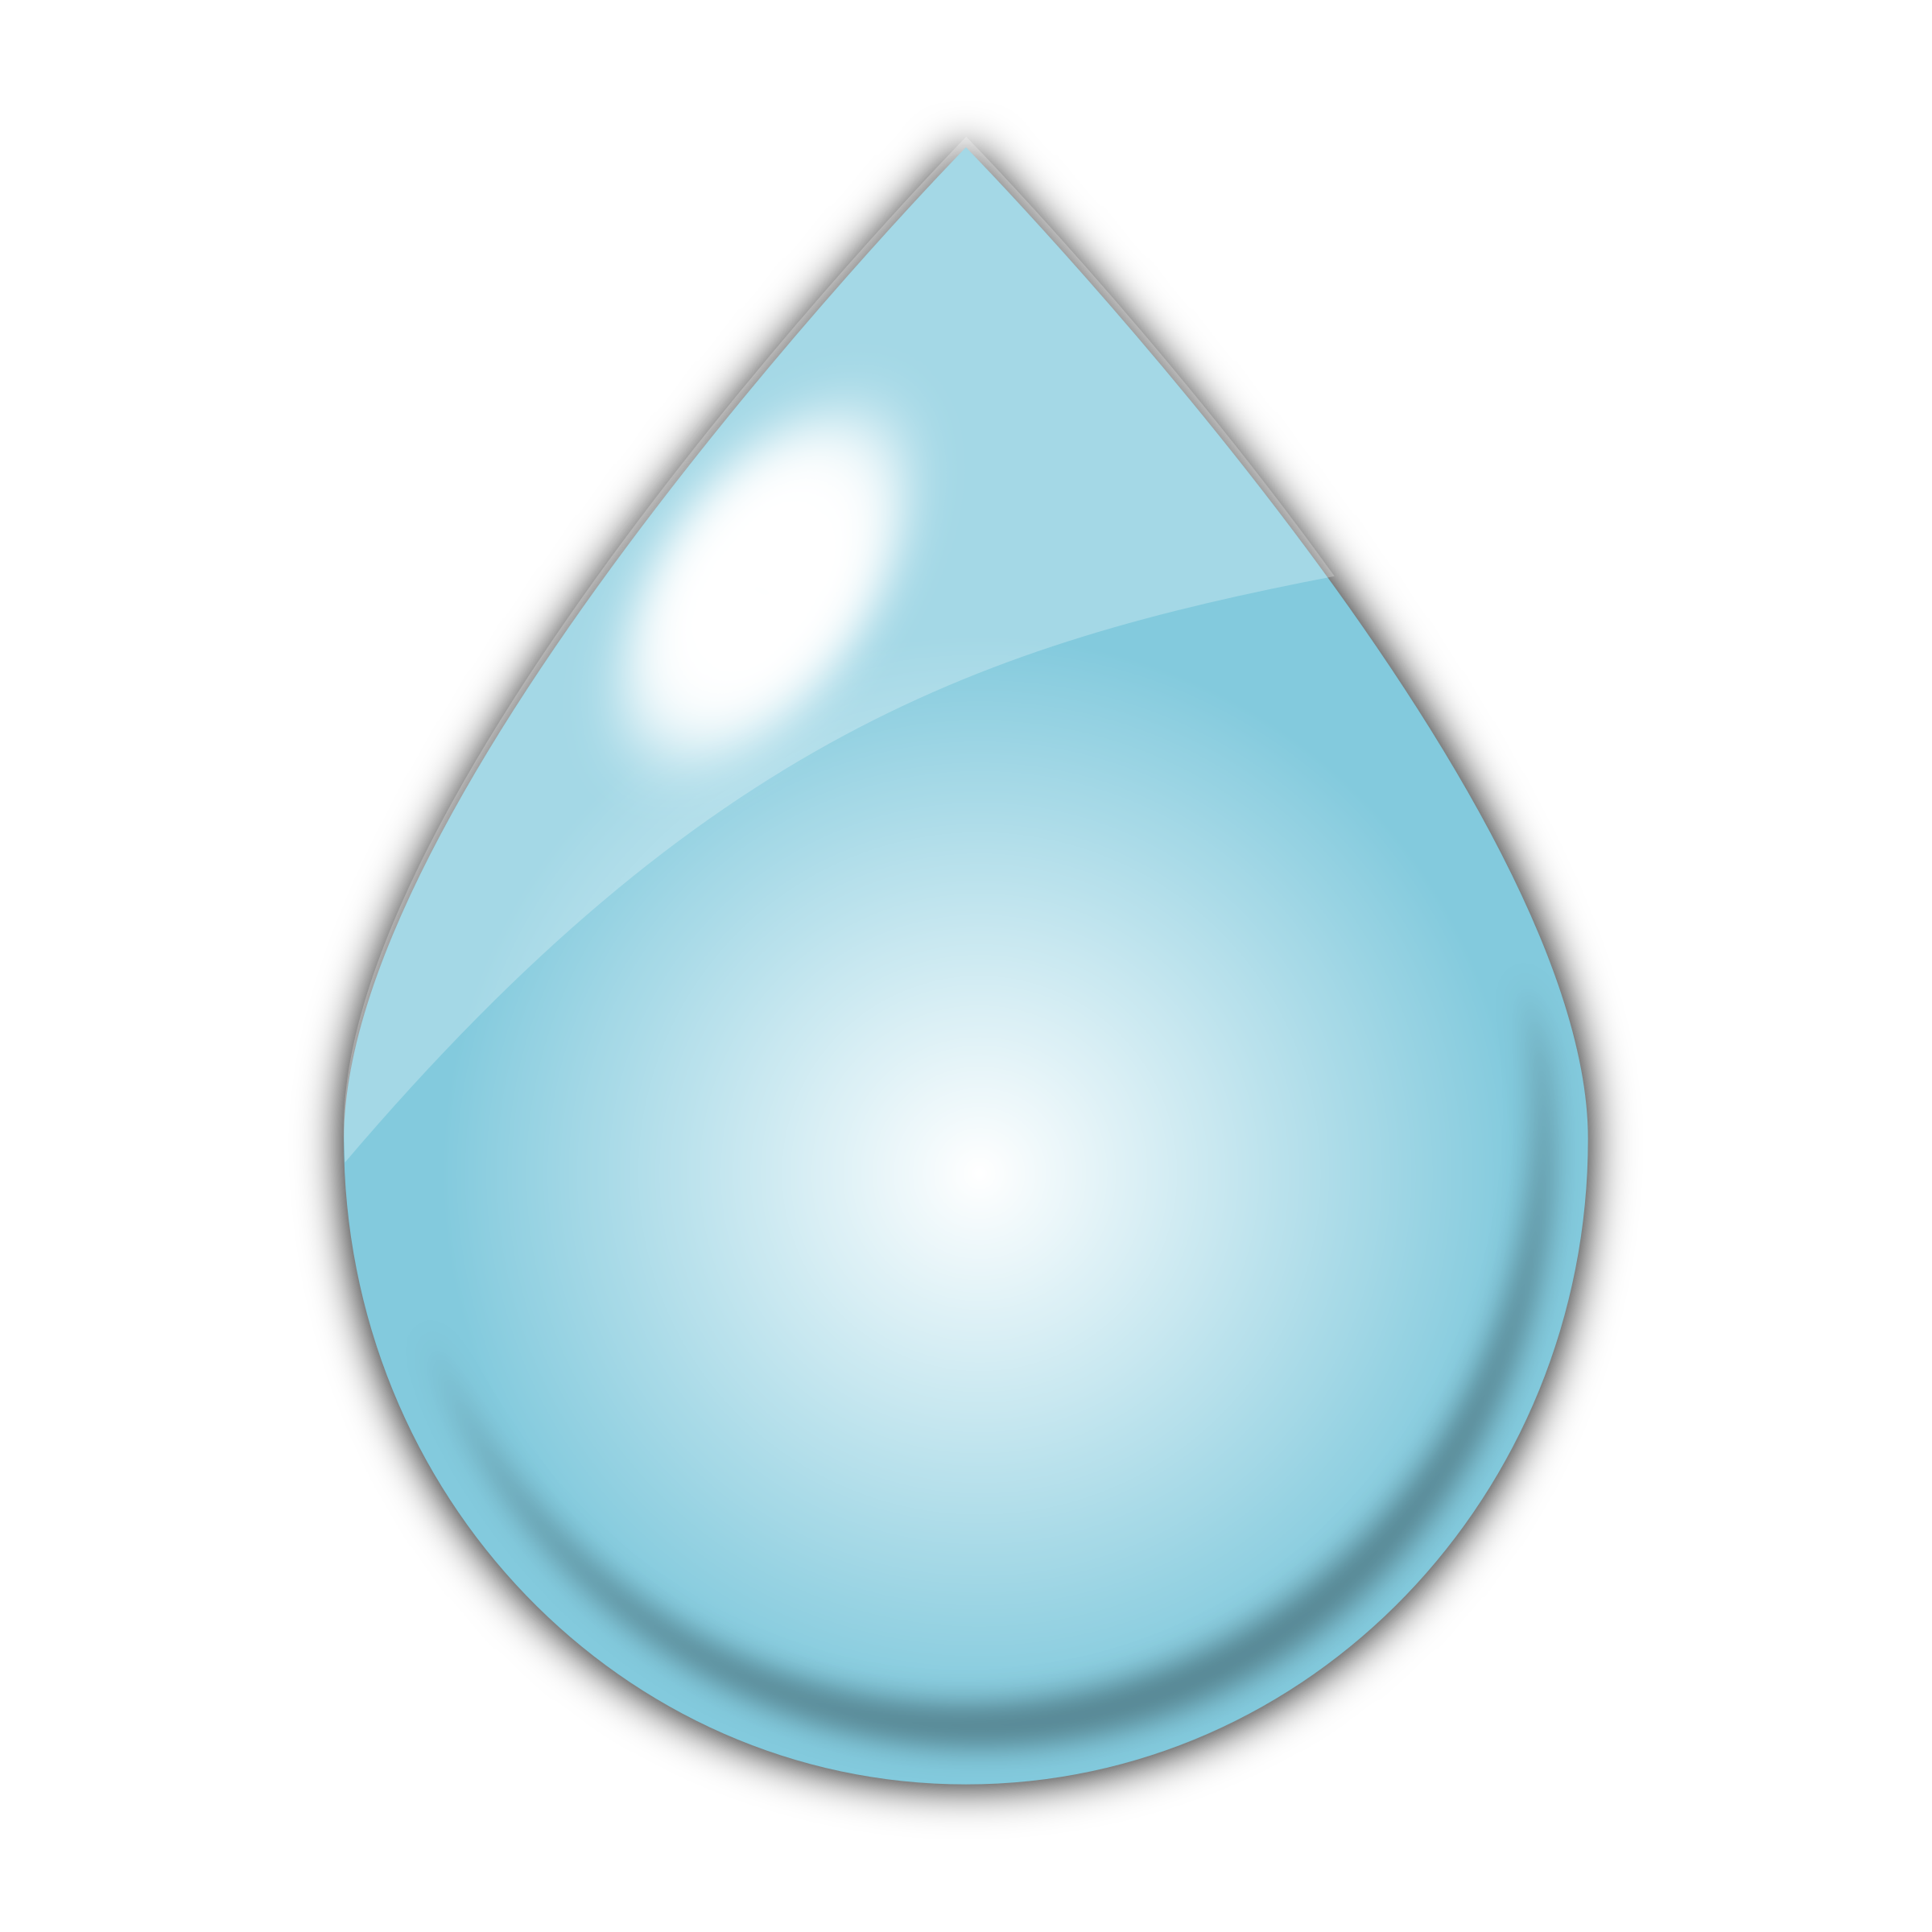 Drawings of raindrops clipart - Raindrop Clipart